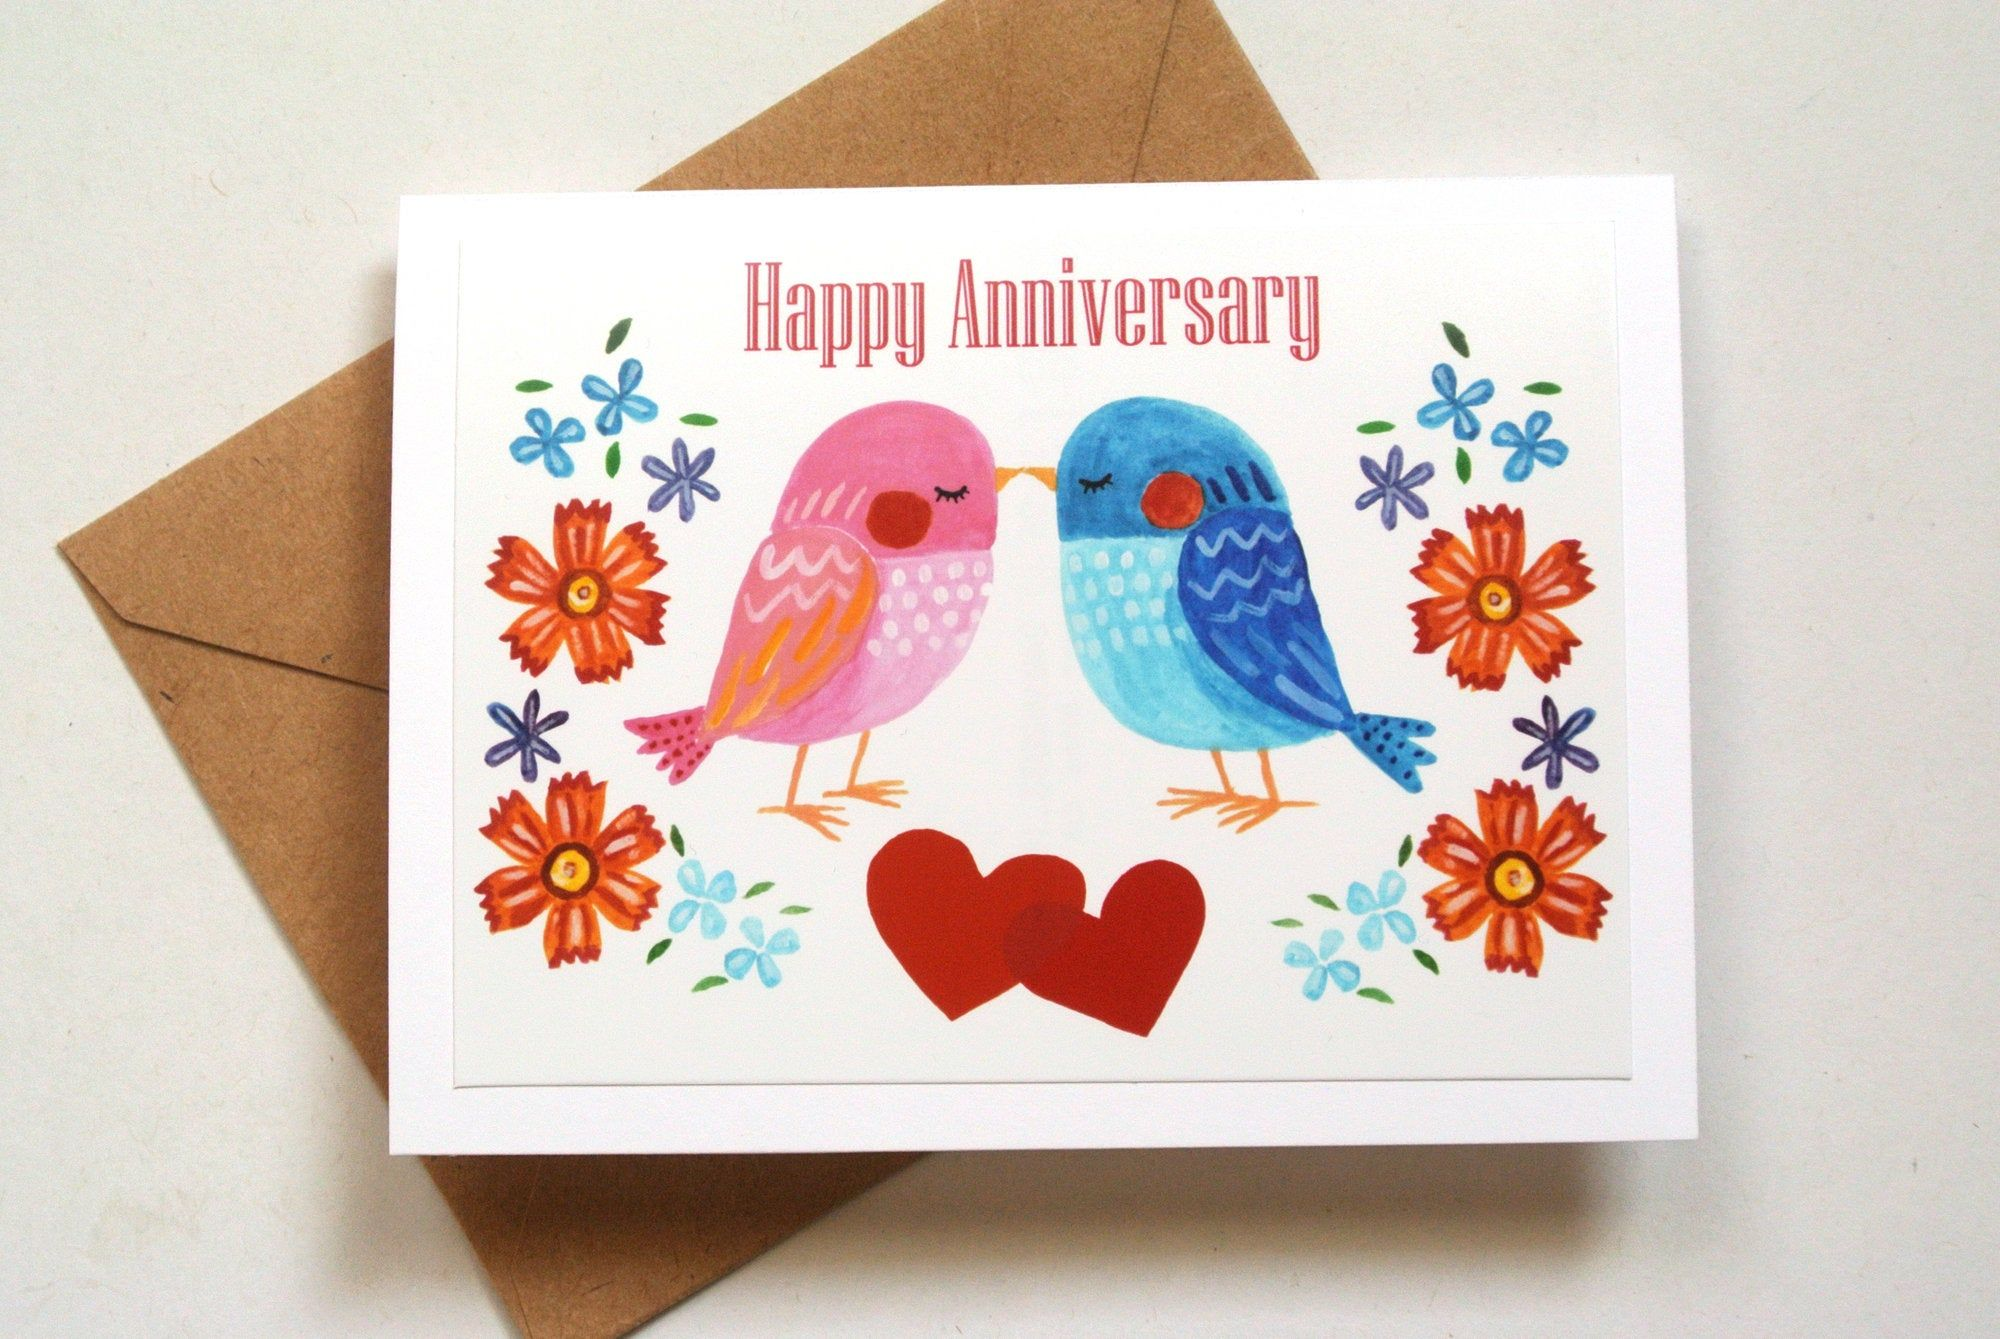 Happy Anniversary Card For Couple Cute Birds Wedding Etsy Happy Anniversary Cards Anniversary Cards For Husband Anniversary Cards For Boyfriend